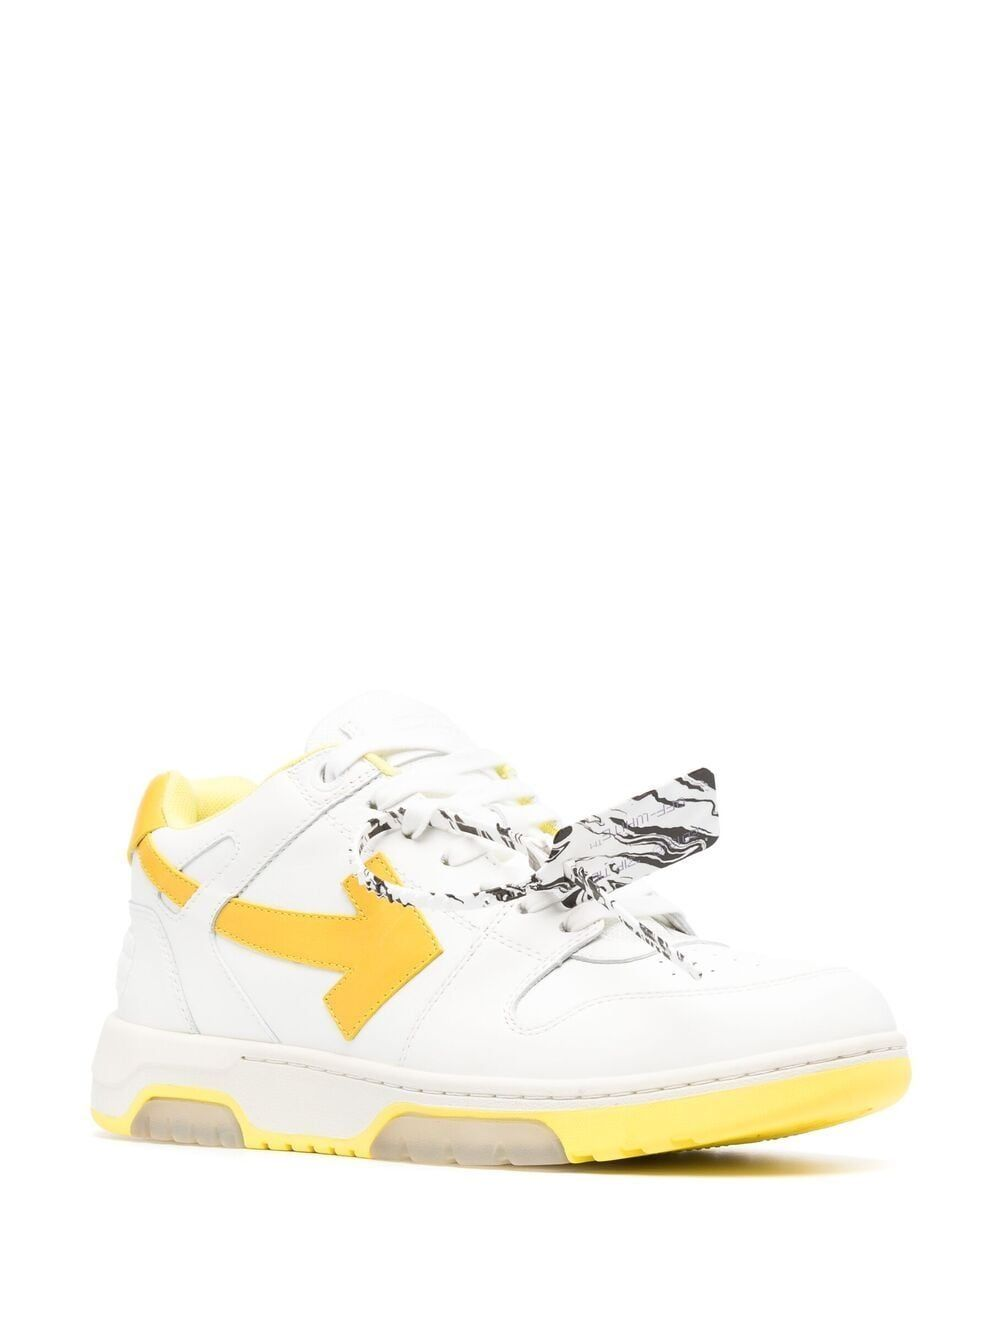 OFF-WHITE Leathers OFF-WHITE MEN'S WHITE LEATHER SNEAKERS